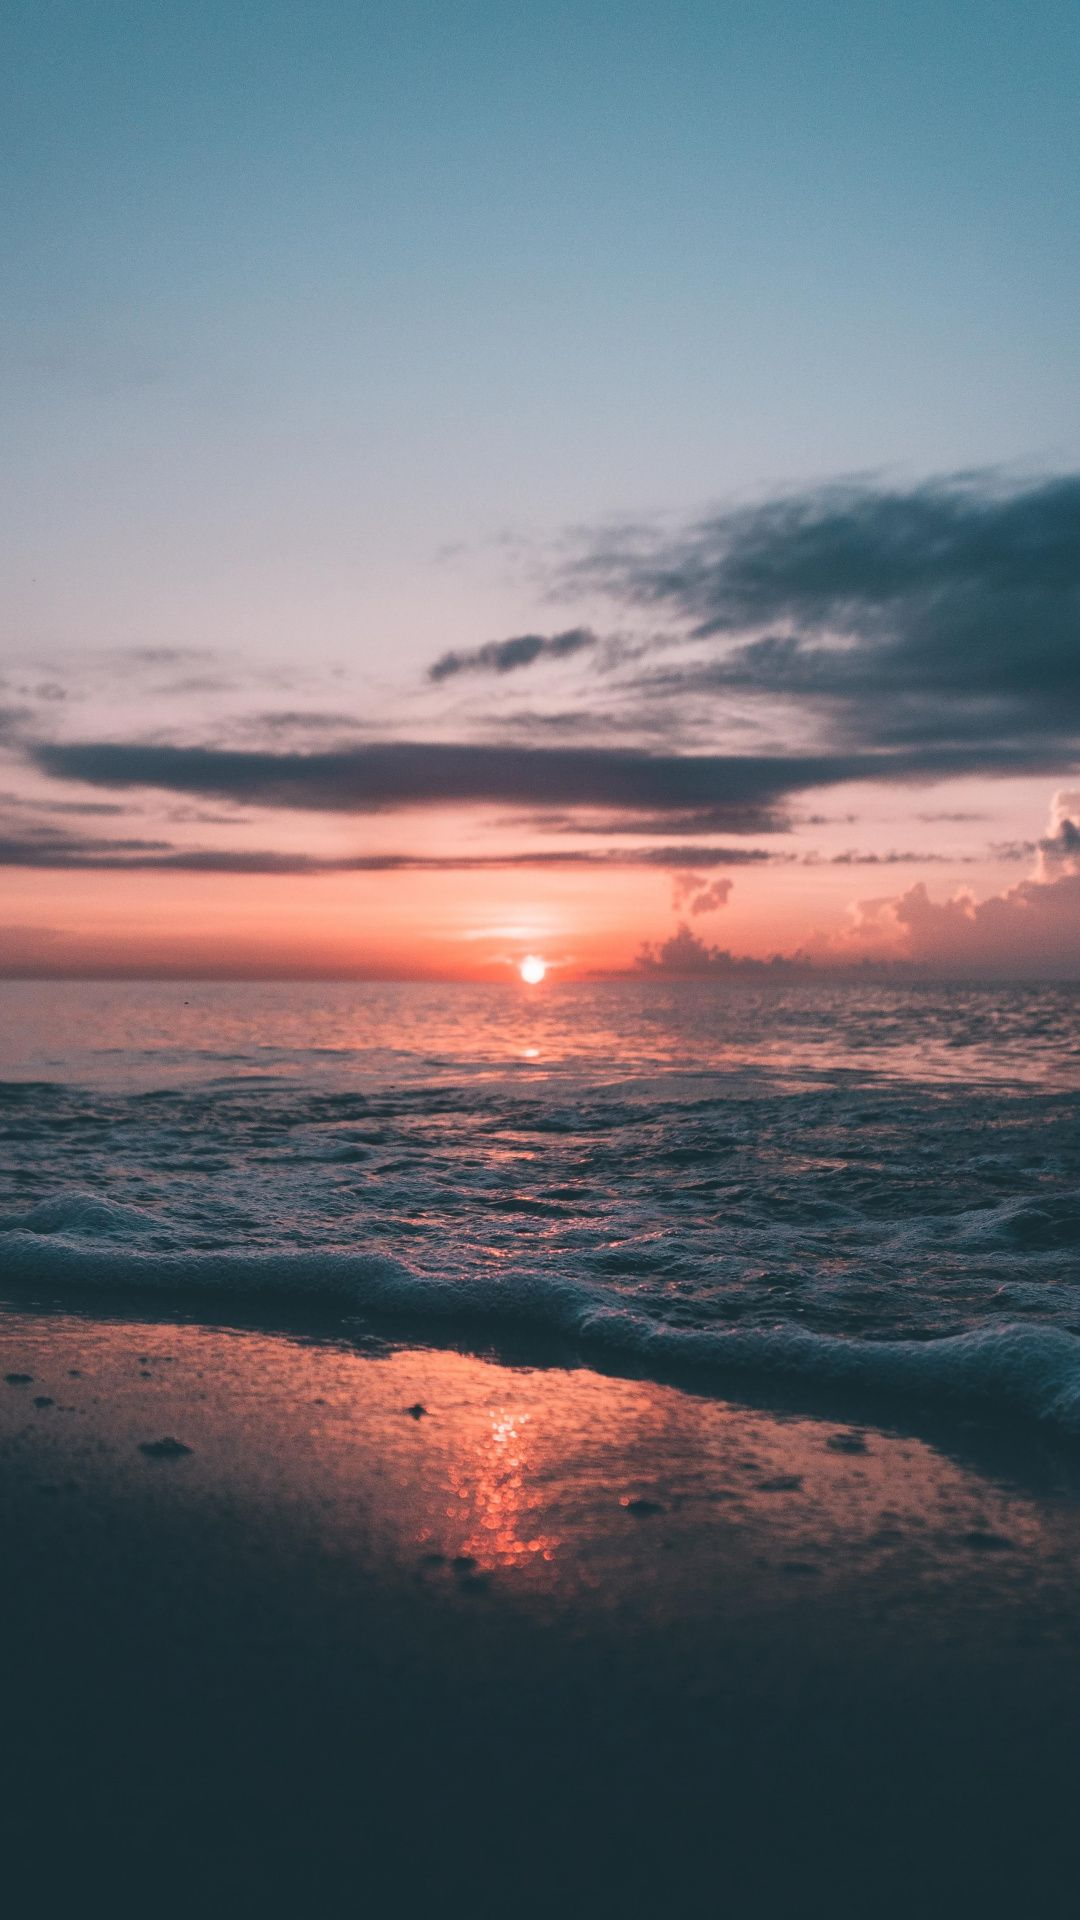 Soft Sea Wave Close Up Sunset Nature 1080x1920 Wallpaper Sky Aesthetic Nature Pictures Nature Photography